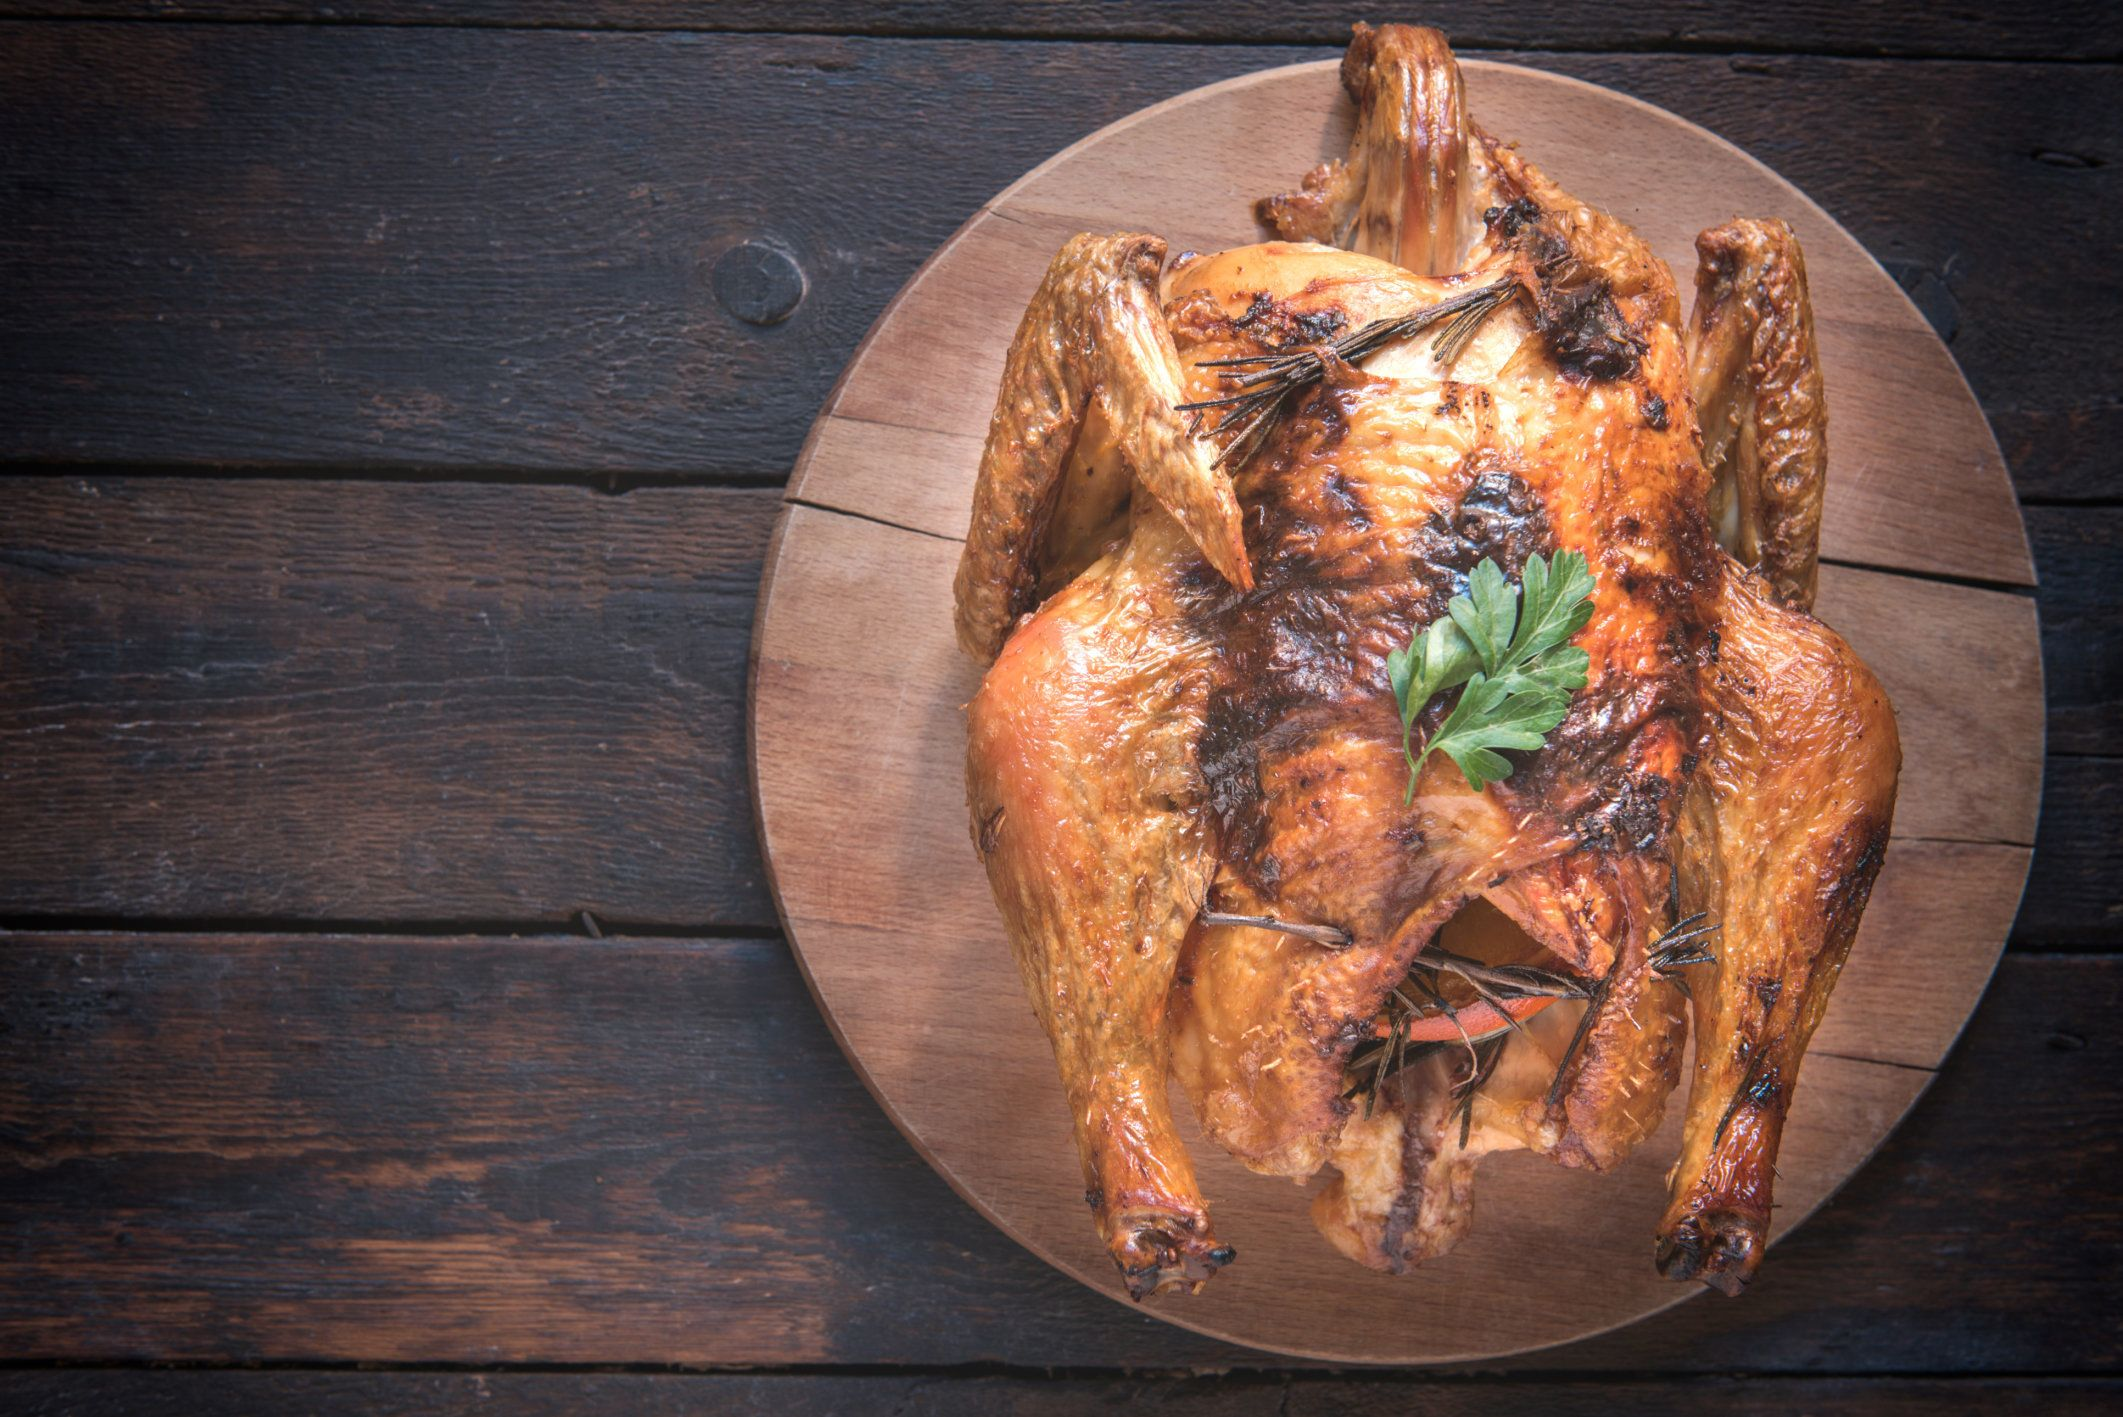 Split toasted turkey on the wooden background with blank space